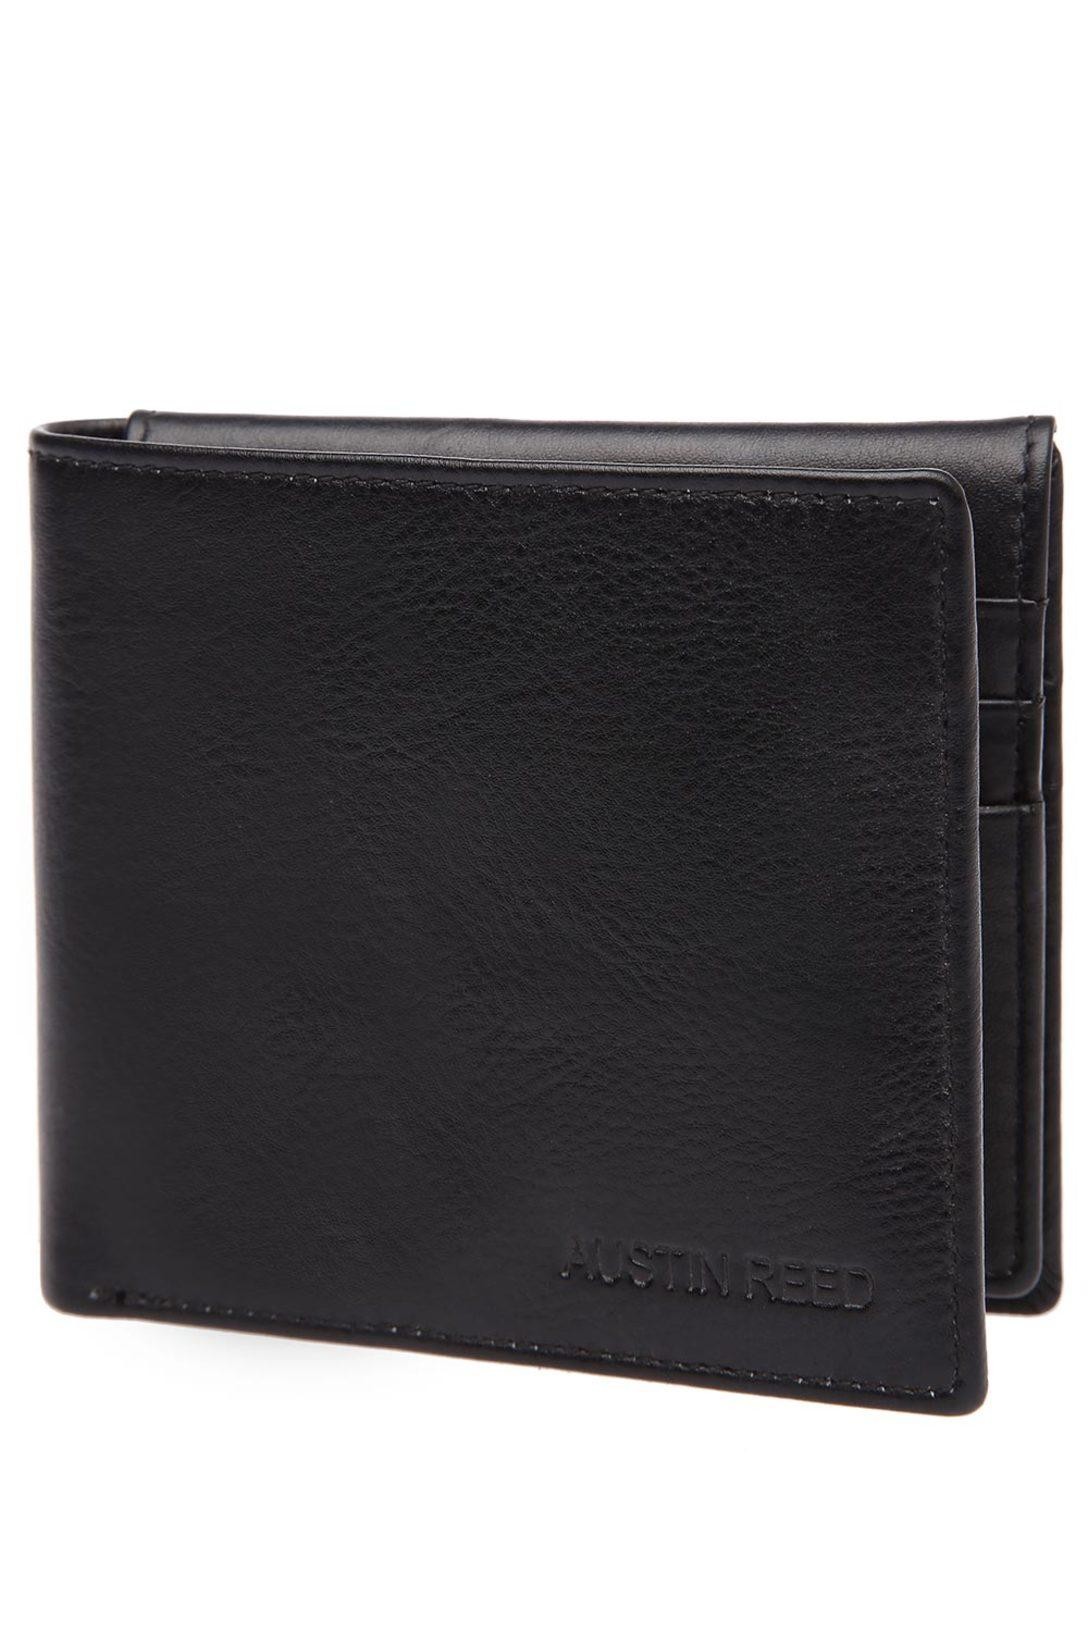 Buy Austin Reed Austin Reed Mens Brown Leather Bi Fold Wallet Shoppers Stop